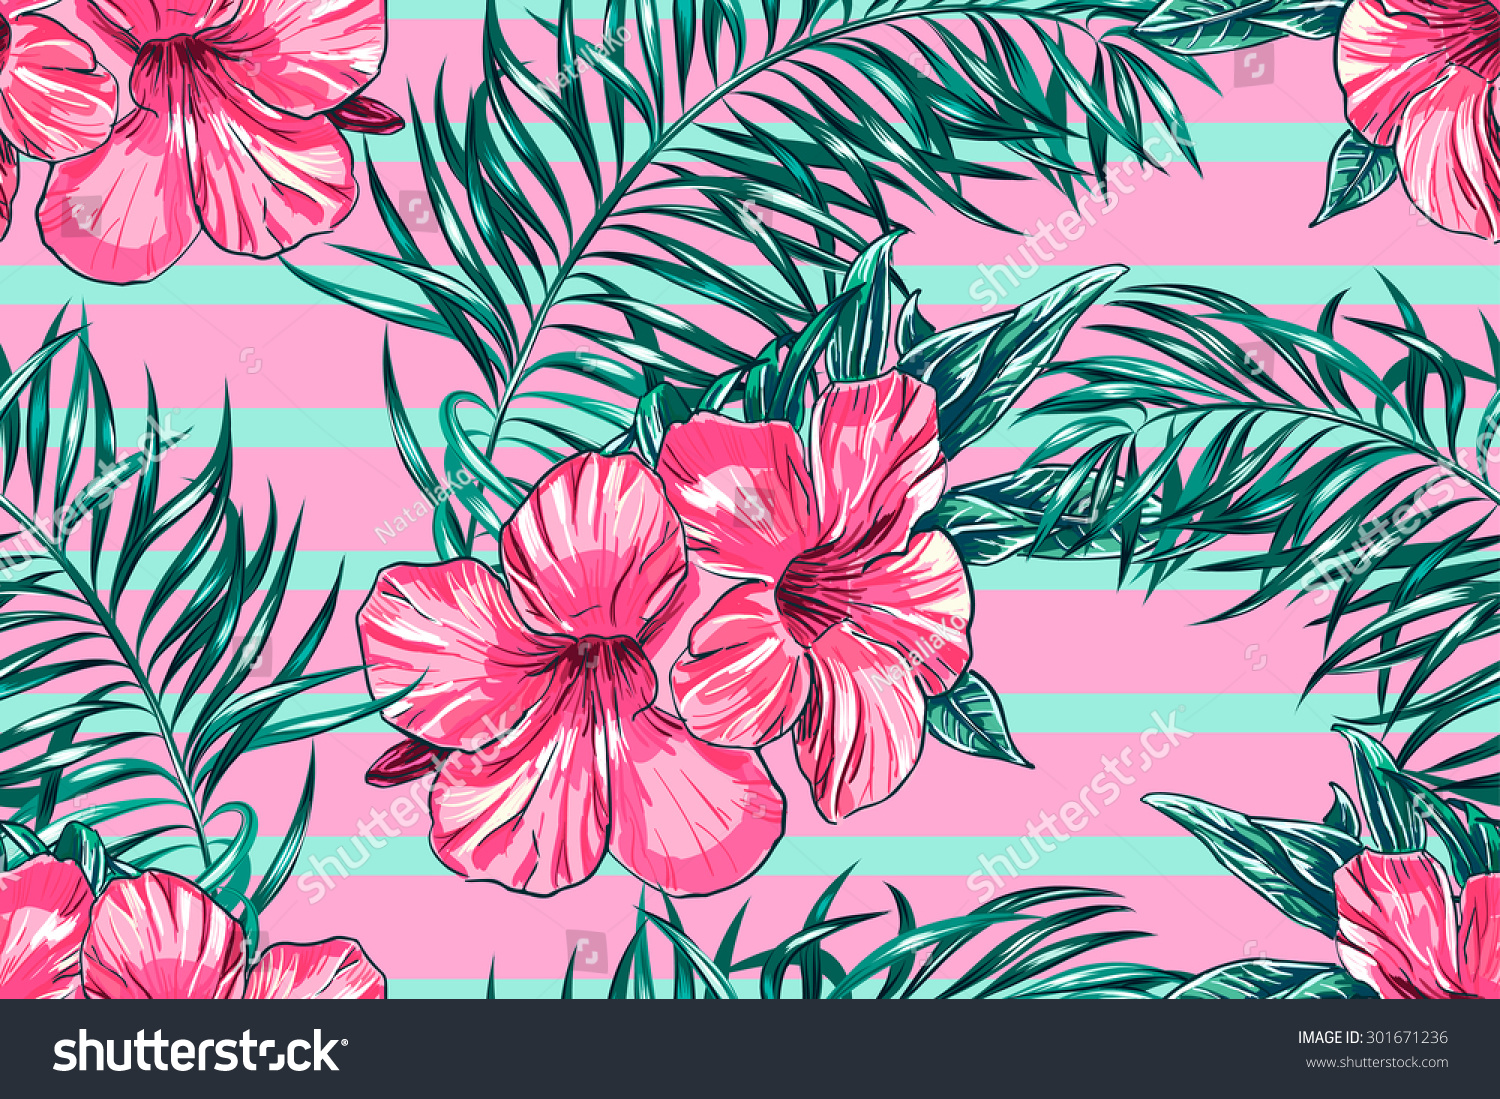 Royalty-free Tropical flowers, palm leaves, hibiscus ...